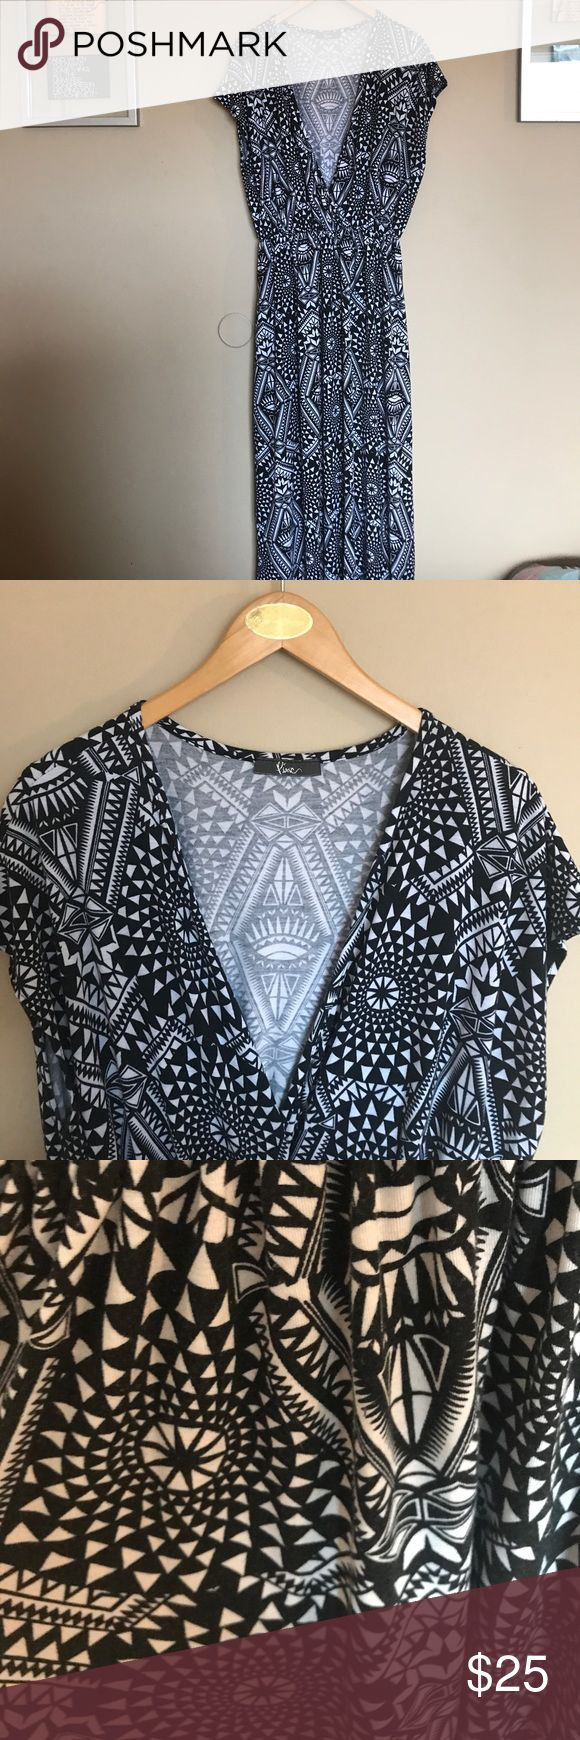 Pinc black white tribal Aztec print 2x maxi dress Pinc black white tribal Aztec print 2x maxi dress. Excellent used condition plus size Curvi maxi dress with a geometric pattern, as Tech type tribal print. Plunging neck line with slight Sleeve for flattering, curvy fit. Beautiful for weekend summer event, casual wear, summer beach cover-up or date night out with the gals or the guys. Very versatile dress. 96% polyester 4% spandex.  I love reasonable offers, bundle and save! I ship same or…